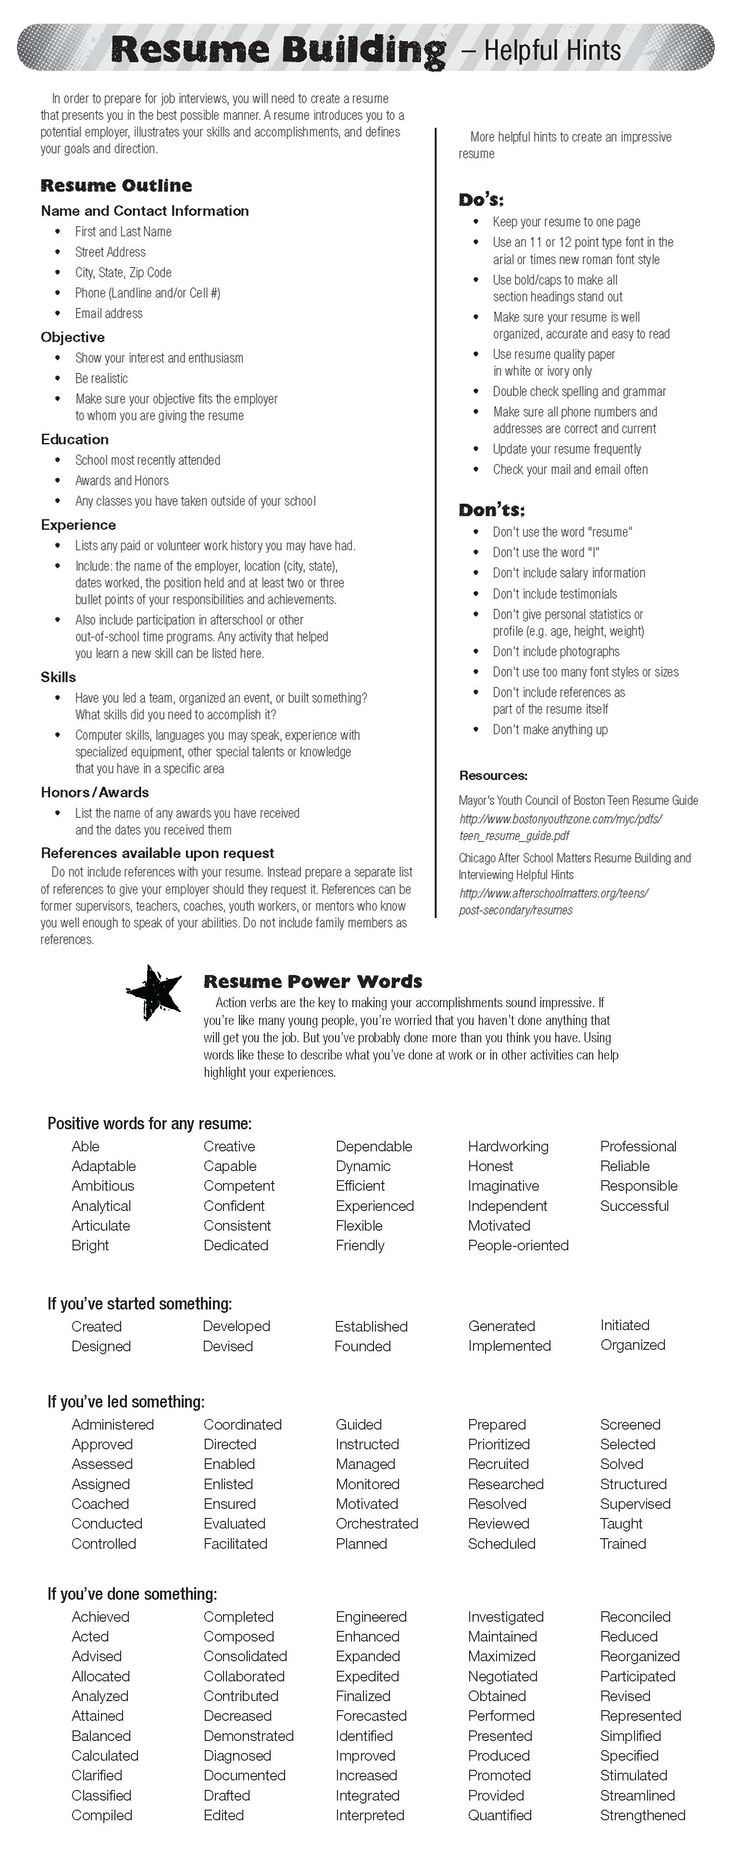 Opposenewapstandardsus  Prepossessing  Ideas About Resume On Pinterest  Cv Format Resume Cv And  With Engaging  Ideas About Resume On Pinterest  Cv Format Resume Cv And Resume Templates With Astounding Resume Secretary Also Security Resumes In Addition Resume Gaps And Middle School Resume As Well As Best Executive Resumes Additionally Training And Development Resume From Pinterestcom With Opposenewapstandardsus  Engaging  Ideas About Resume On Pinterest  Cv Format Resume Cv And  With Astounding  Ideas About Resume On Pinterest  Cv Format Resume Cv And Resume Templates And Prepossessing Resume Secretary Also Security Resumes In Addition Resume Gaps From Pinterestcom